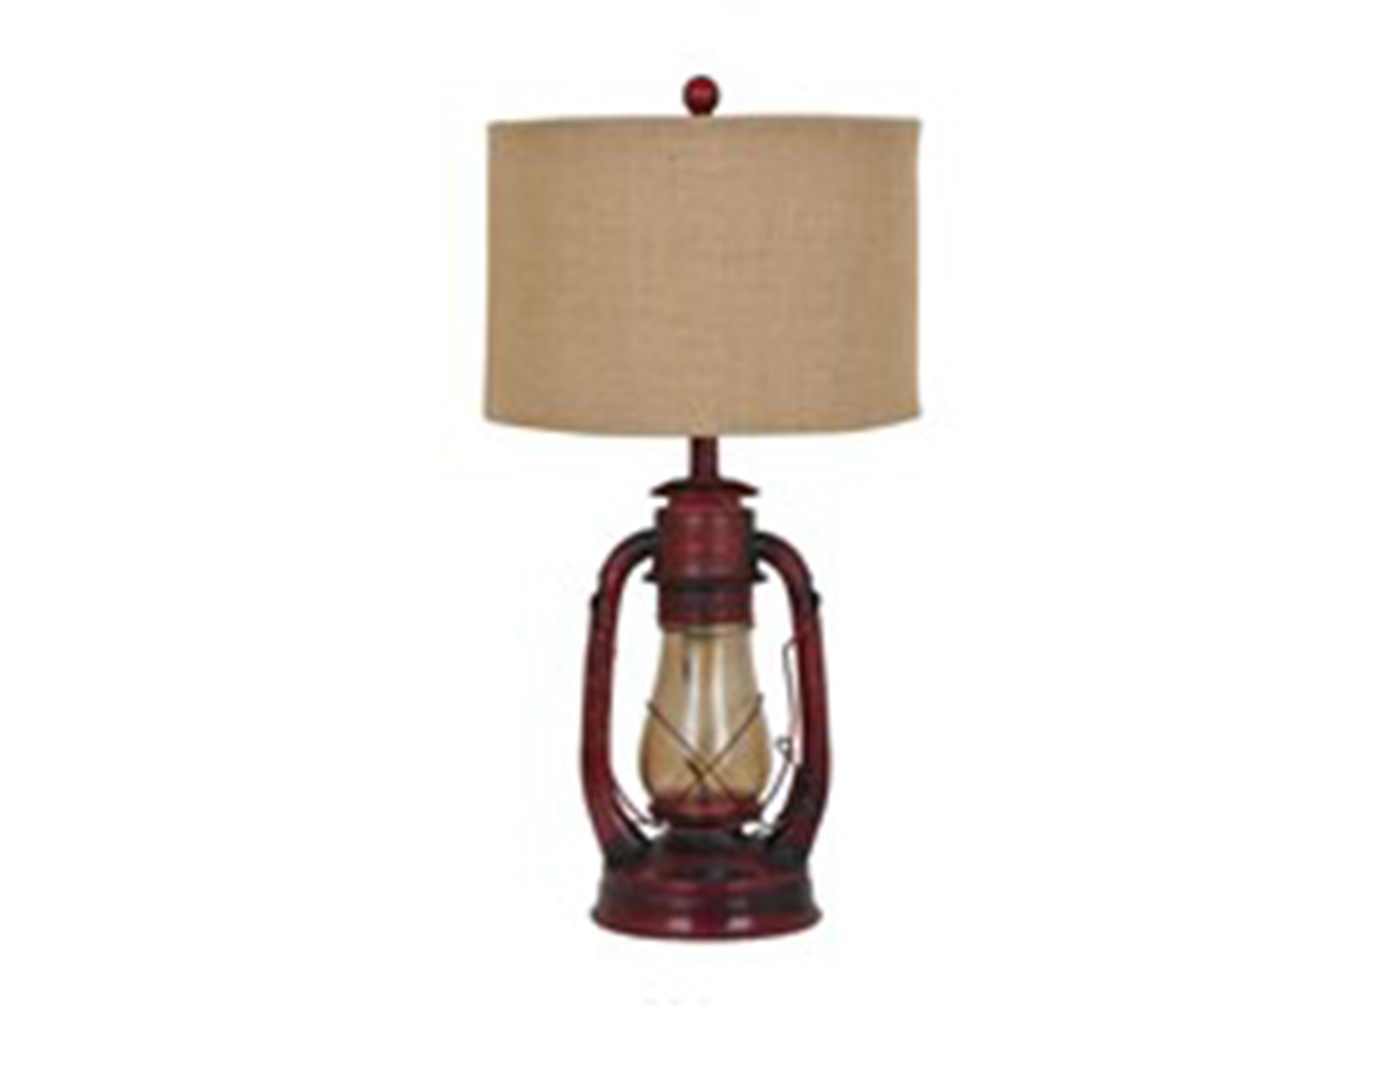 Lamps Online Rustic Red Lantern Table Lamp 28